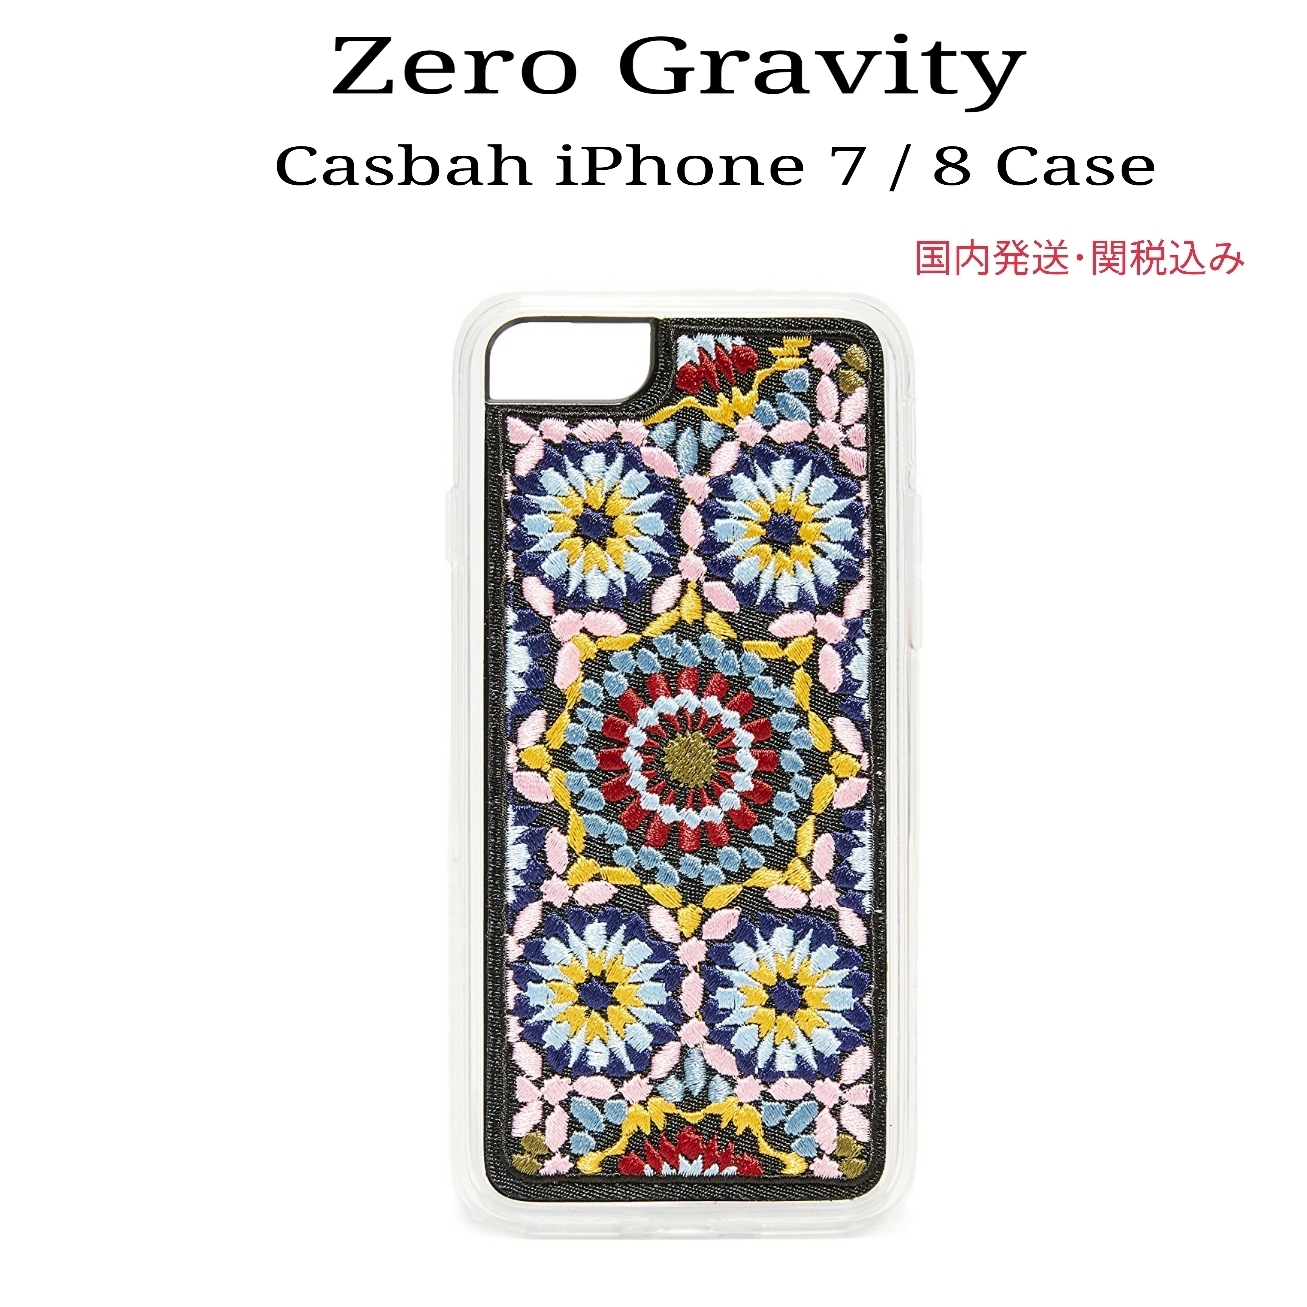 【iPhone7/8対応】 ZERO GRAVITY★Casbah iPhone 7 / 8 ケース